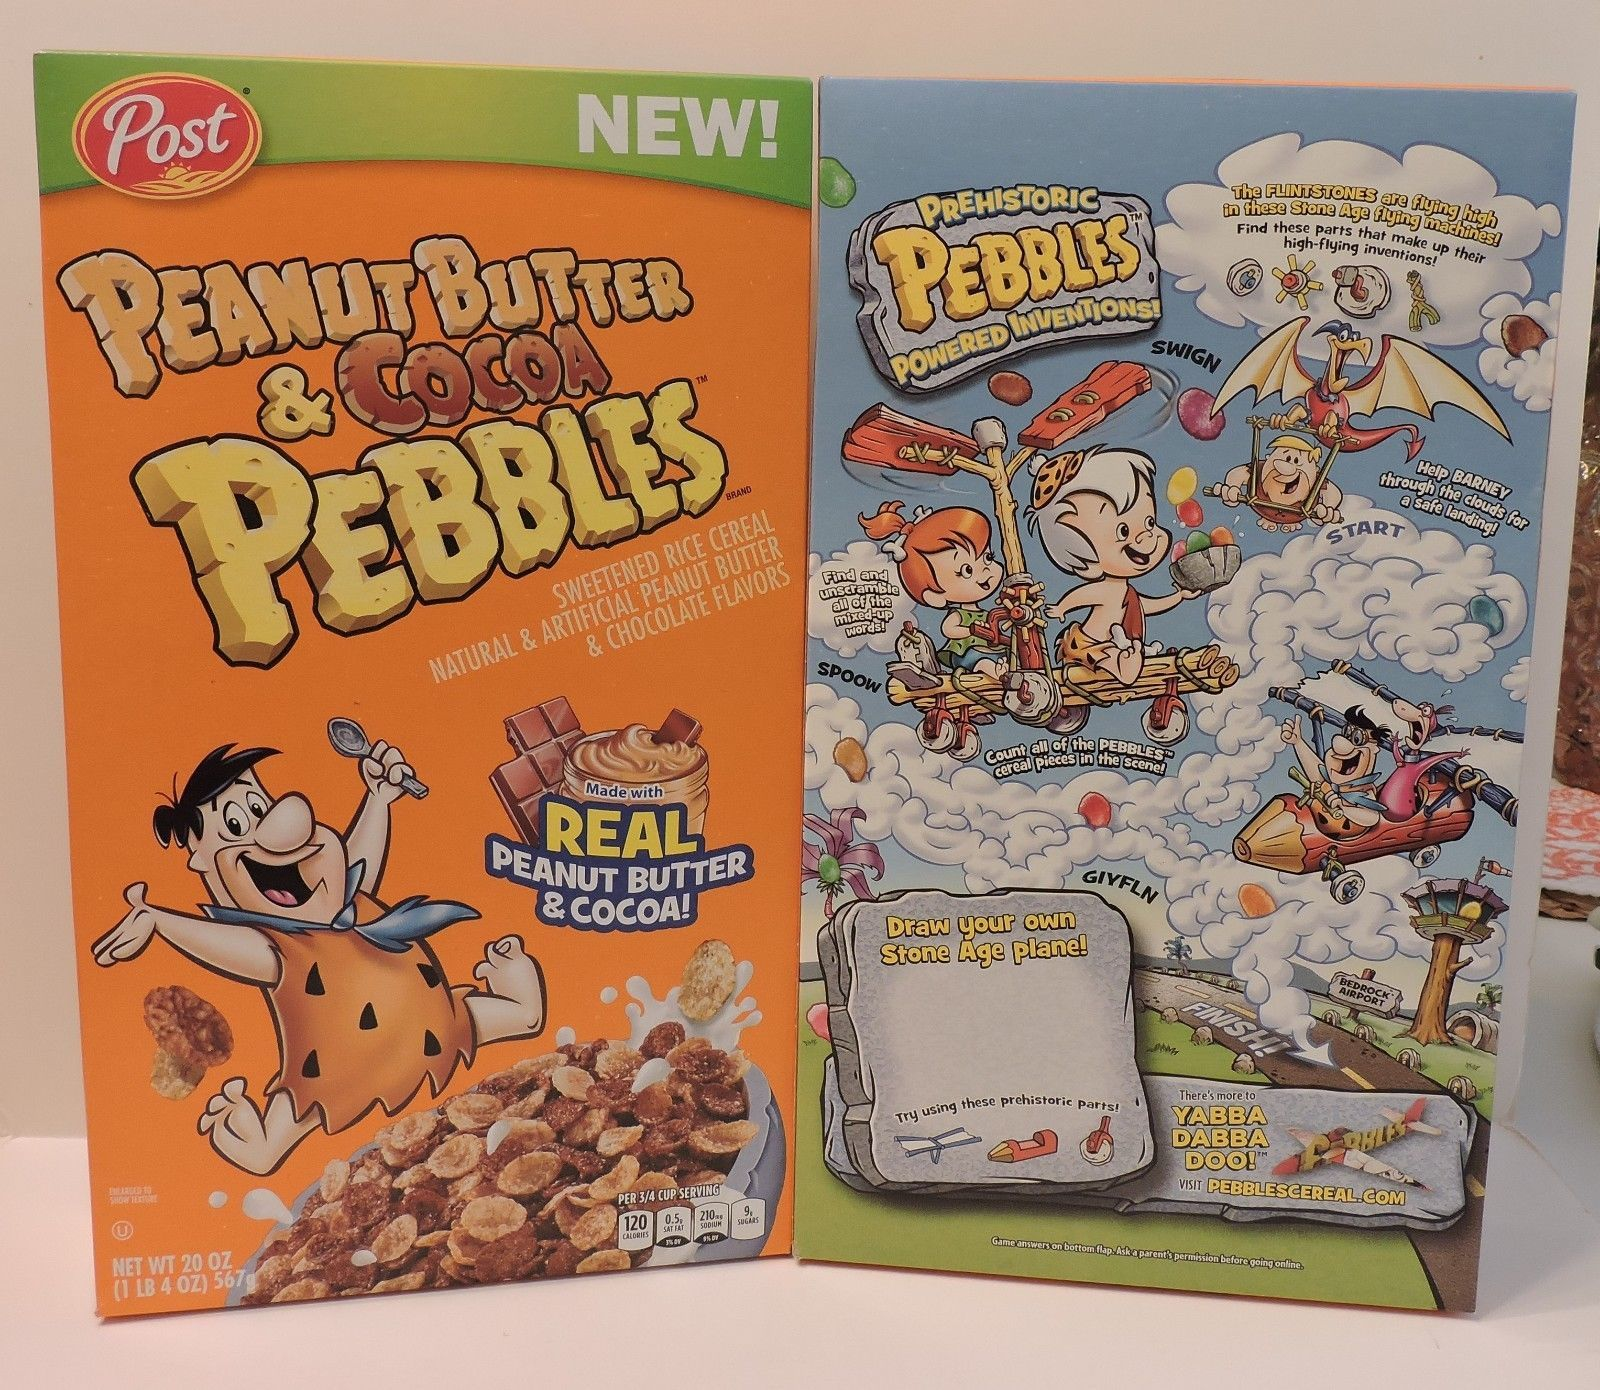 2018 P EAN Ut Butter & Cocoa Pebbles Special and 50 similar items